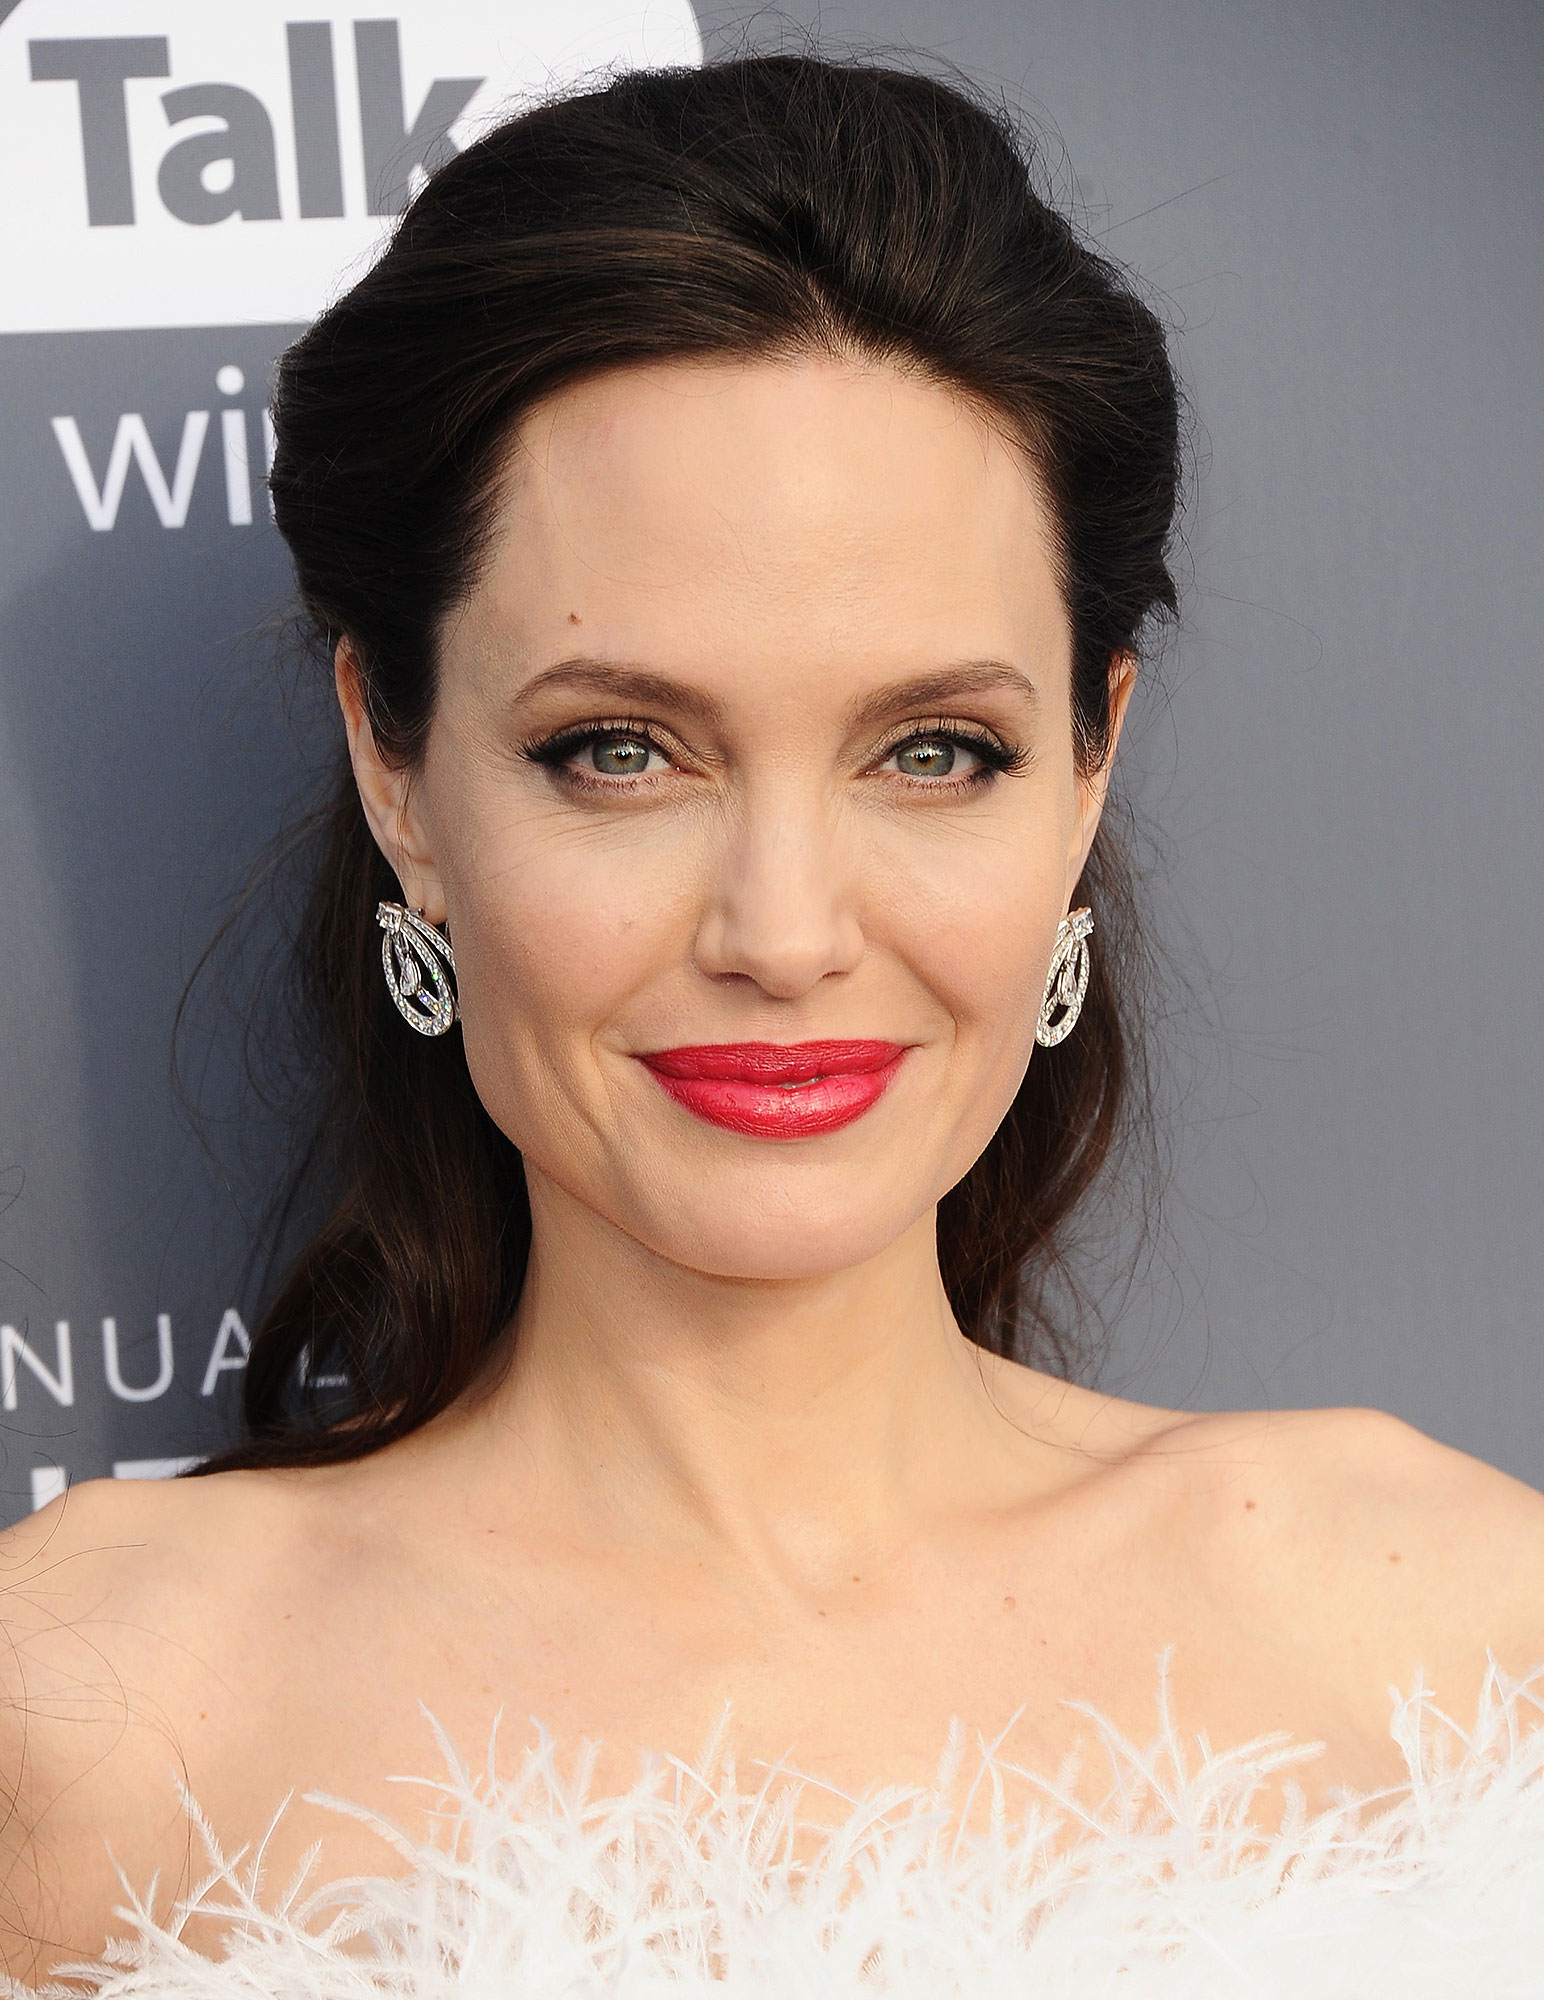 Wondrous Angelina Jolie Hairstyles You Could Apply To Your